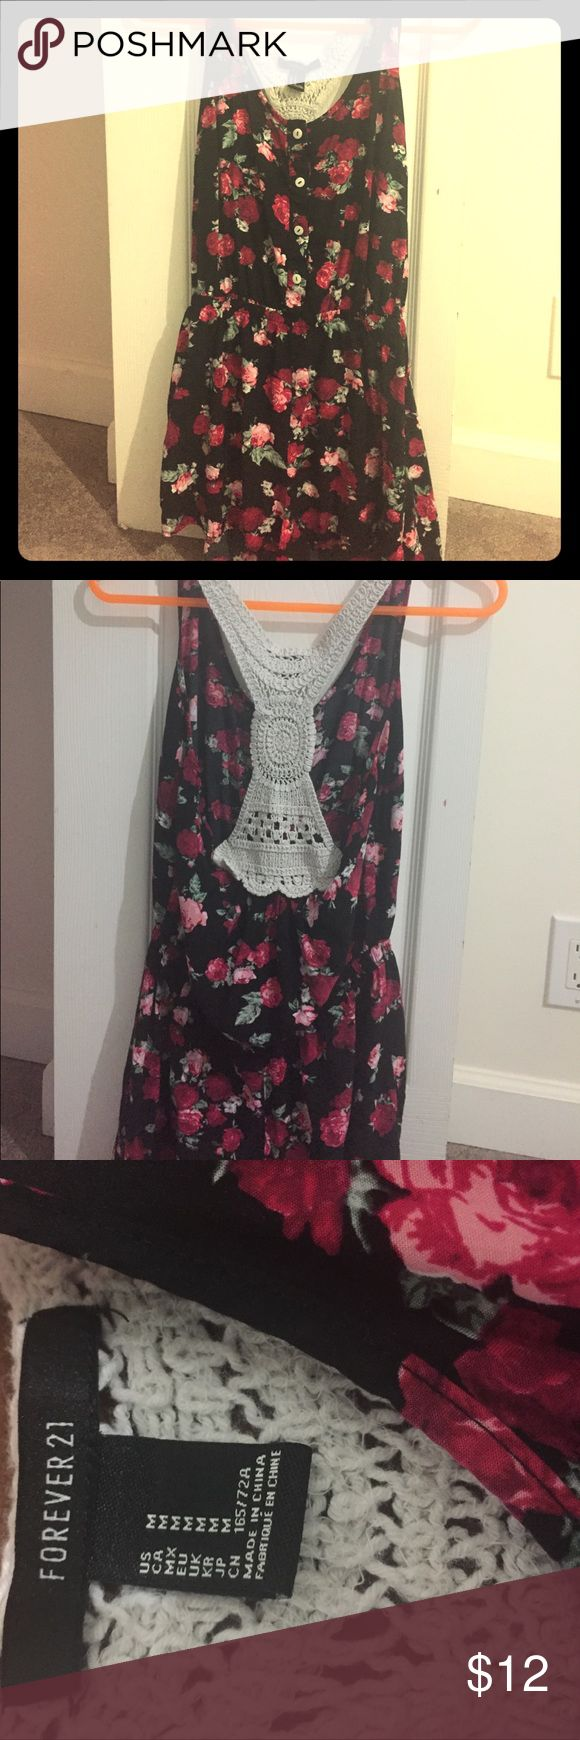 Forever 21 floral romper Black and floral Forever 21 medium romper. Originally bought for $25. Bought in 2014. In really good condition. Forever 21 Dresses Mini